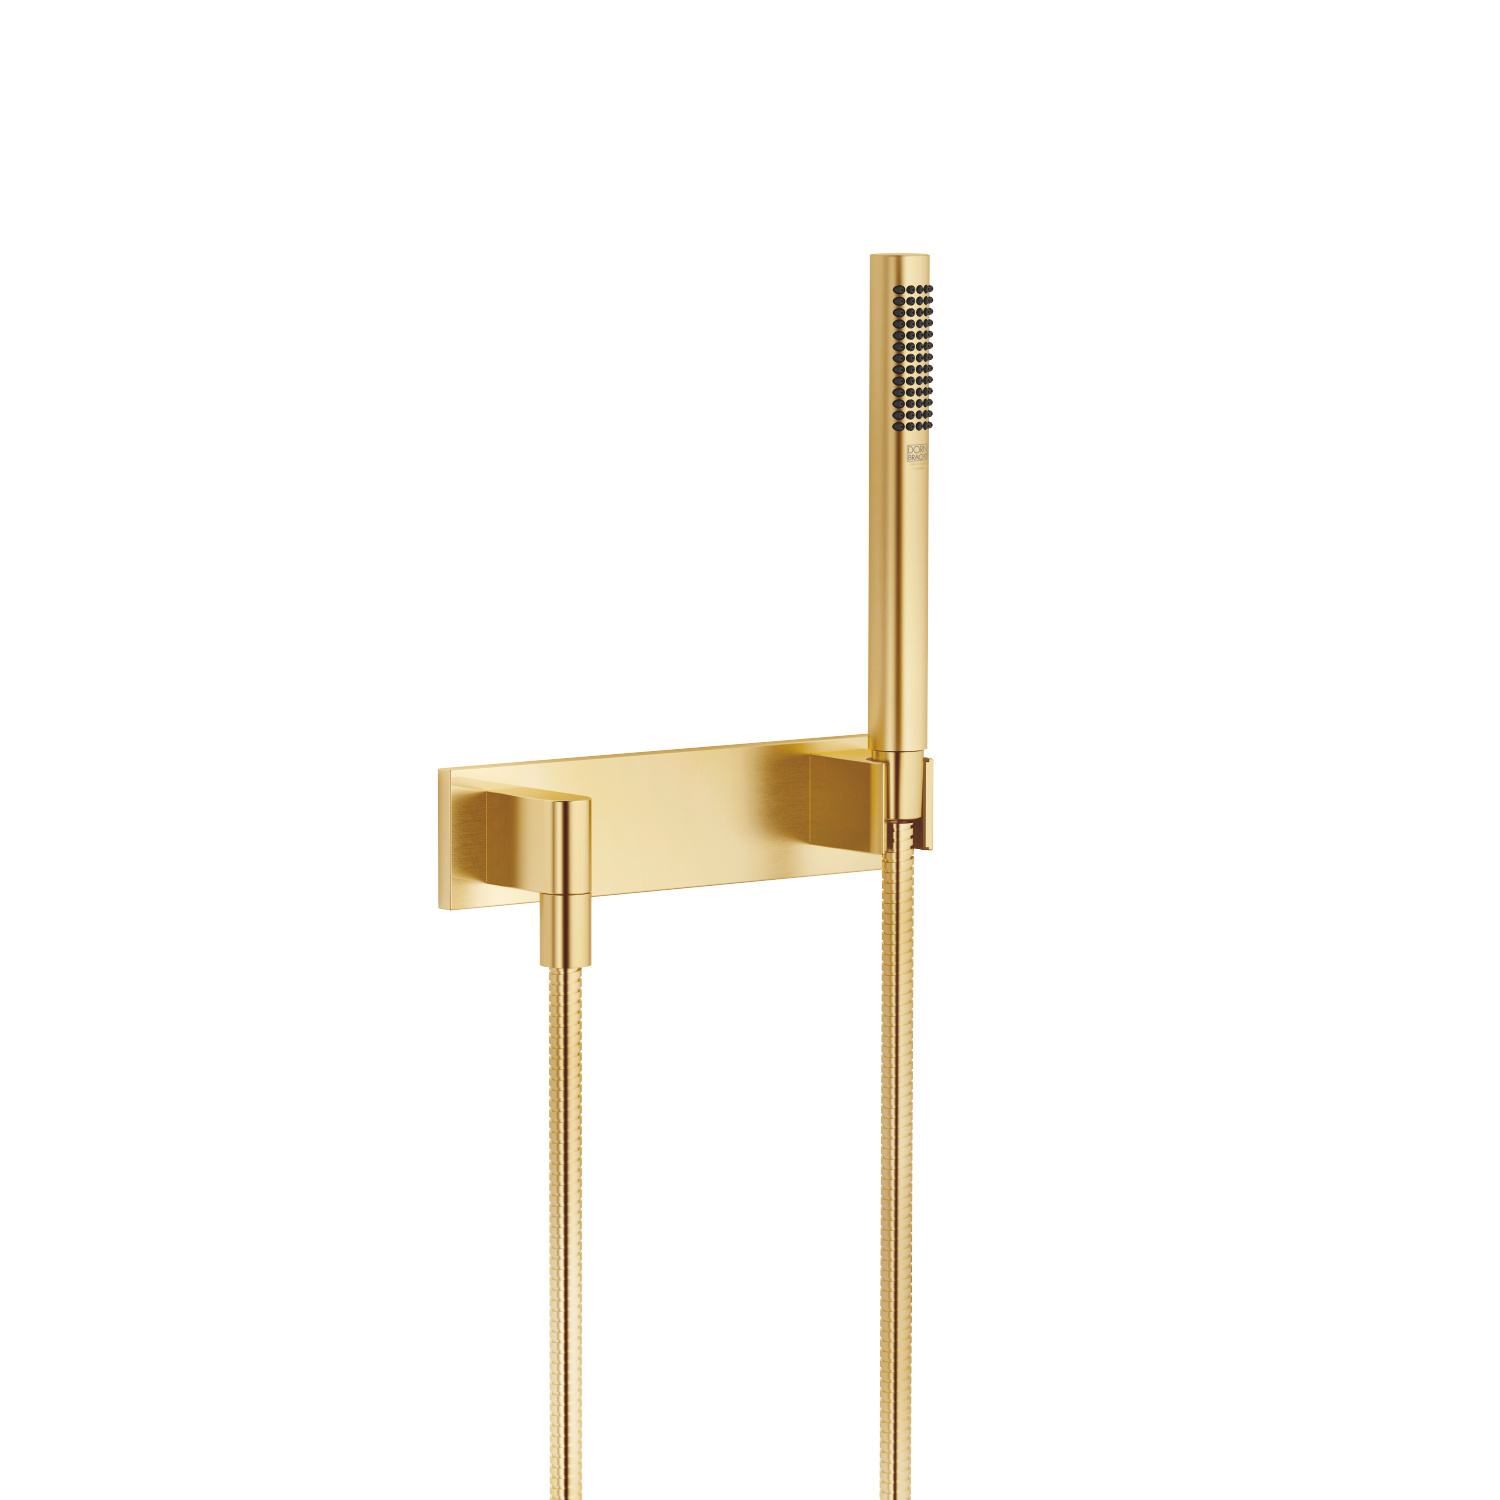 Hand shower set with cover plate - Brushed Durabrass